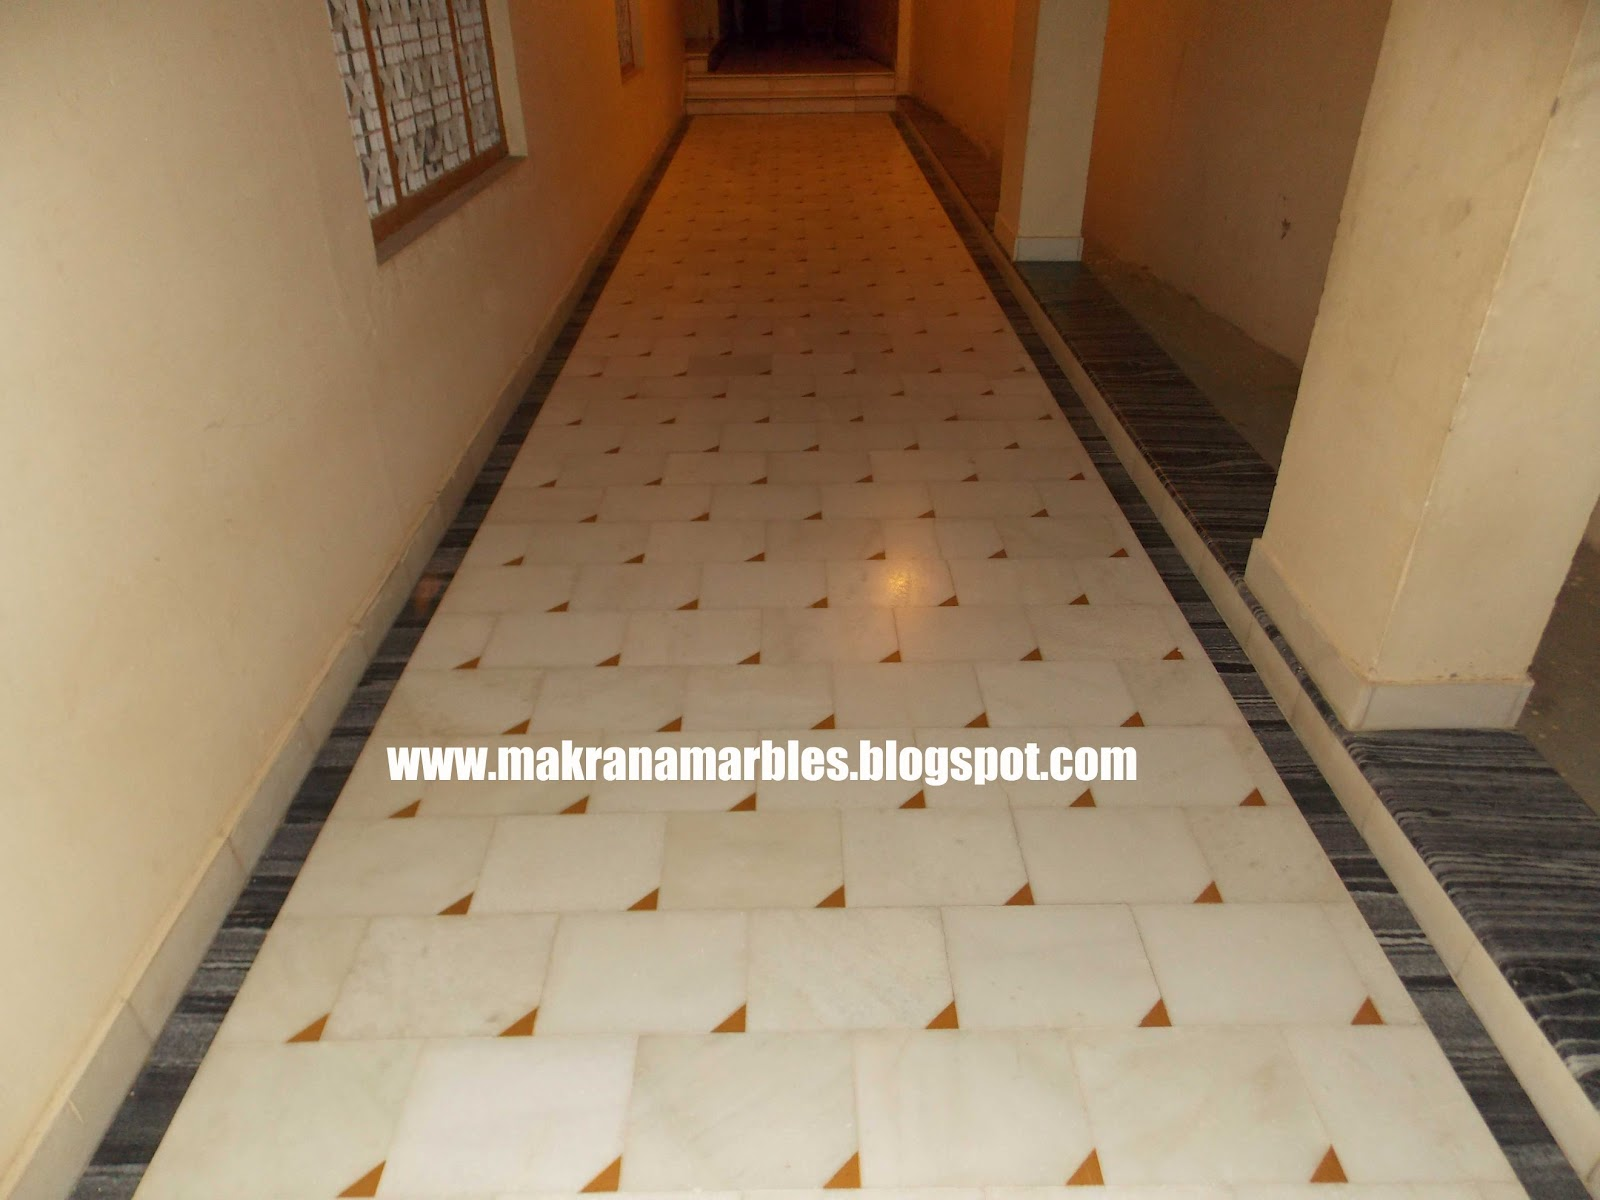 Makrana marble product and pricing details flooring pattern Room floor design